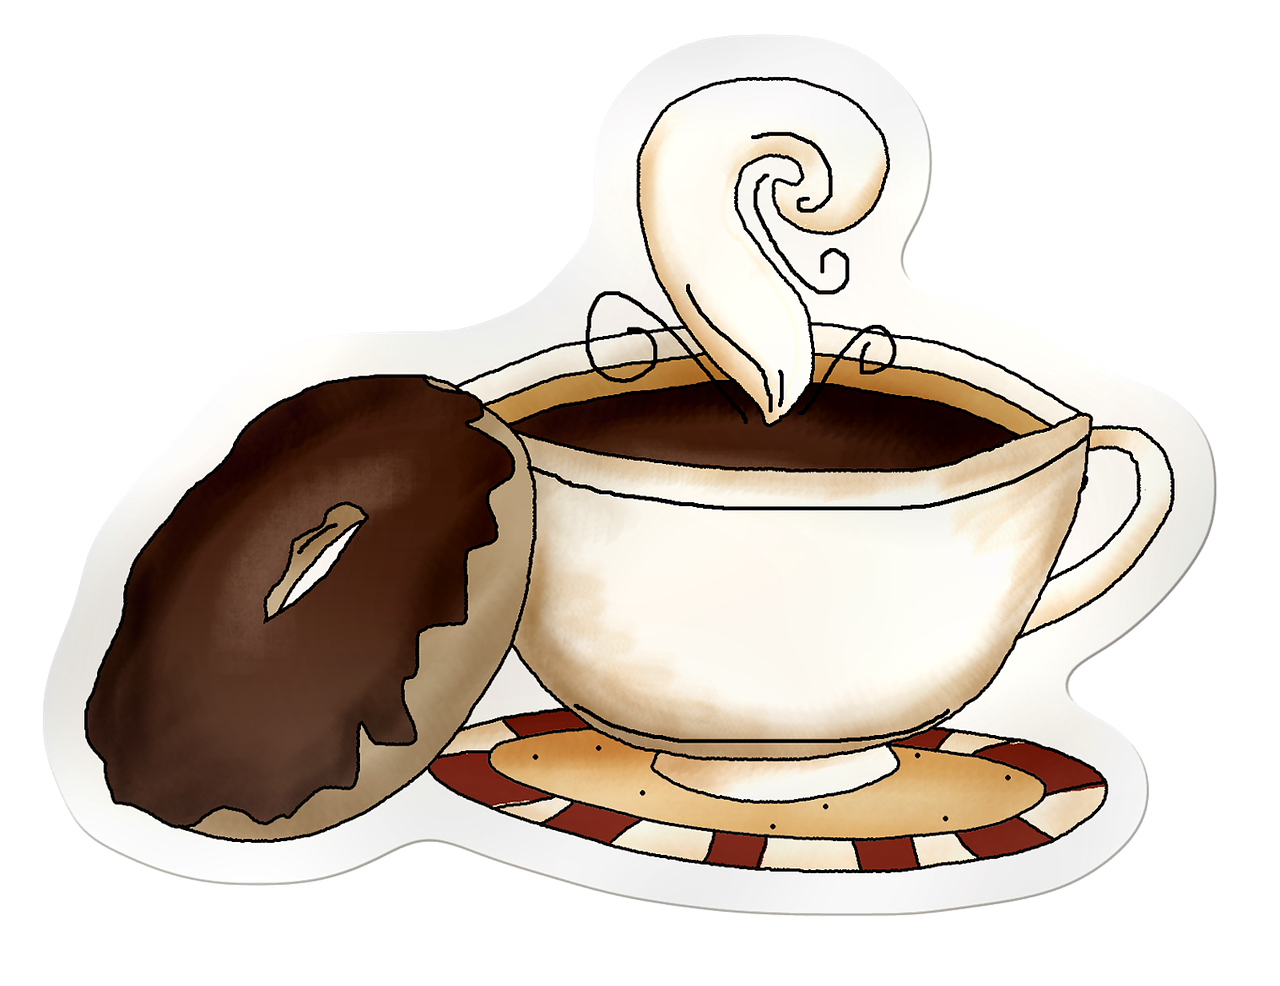 clip freeuse stock Cup head of coffe. Travel coffee mug clipart